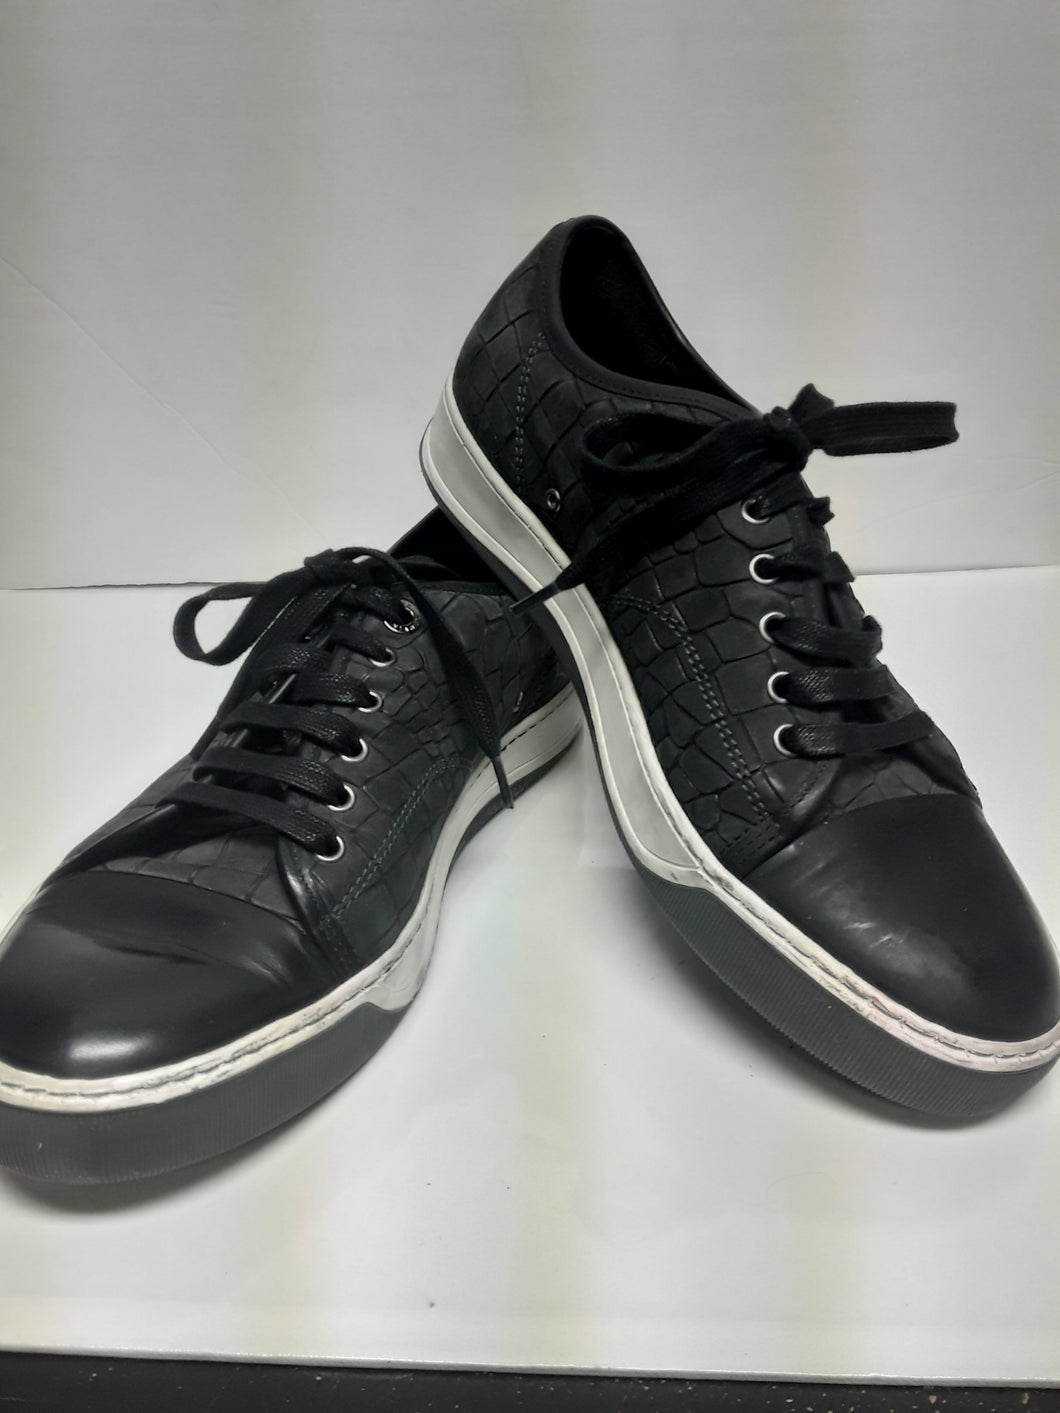 Lanvin Men's Sneakers. Crocodile Embossed Black Leather. 8 to 8.5 Med. Preowned. $199.